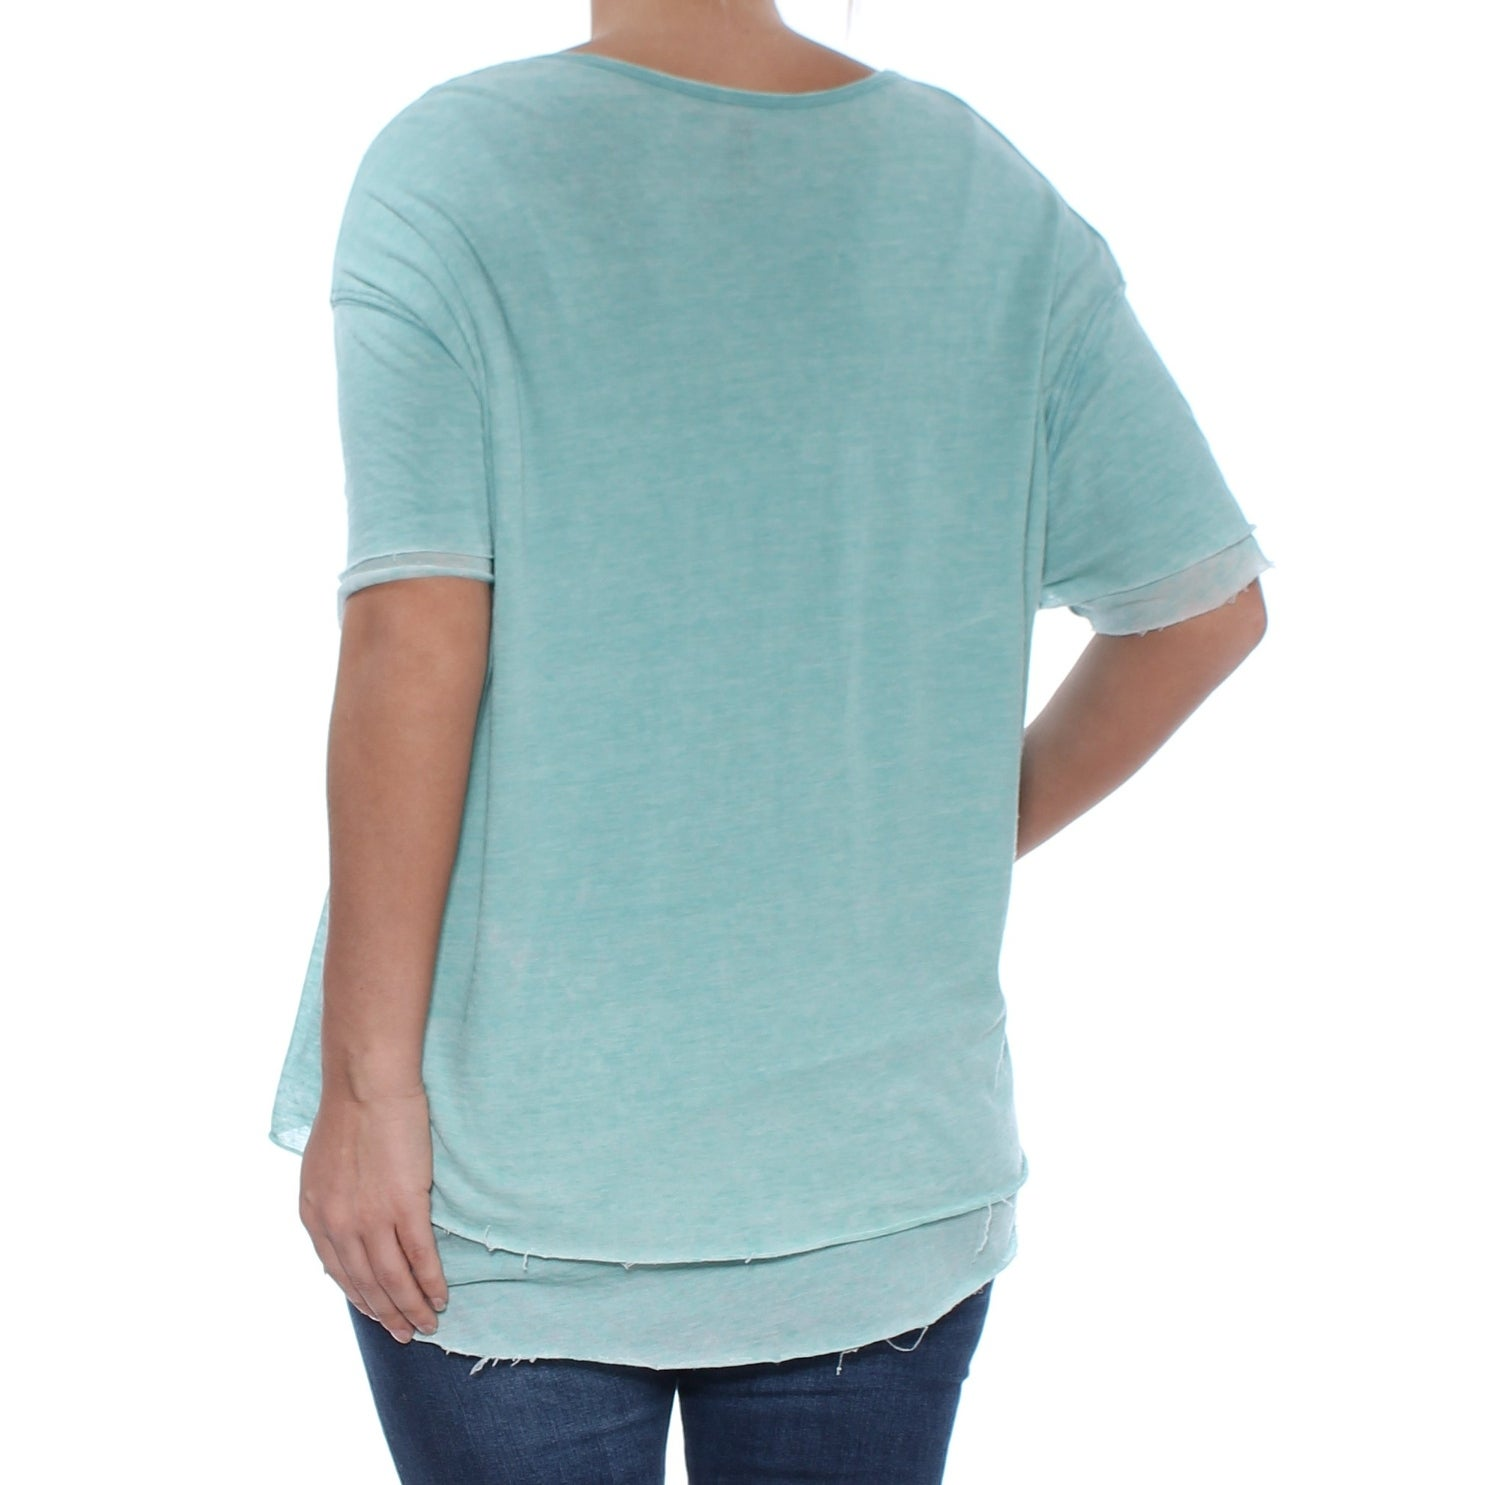 3820c3e48e36 Shop FREE PEOPLE Womens Turquoise Cloud Nine Tee Short Sleeve Boat Neck Top  Size: S - Free Shipping On Orders Over $45 - Overstock - 27870171